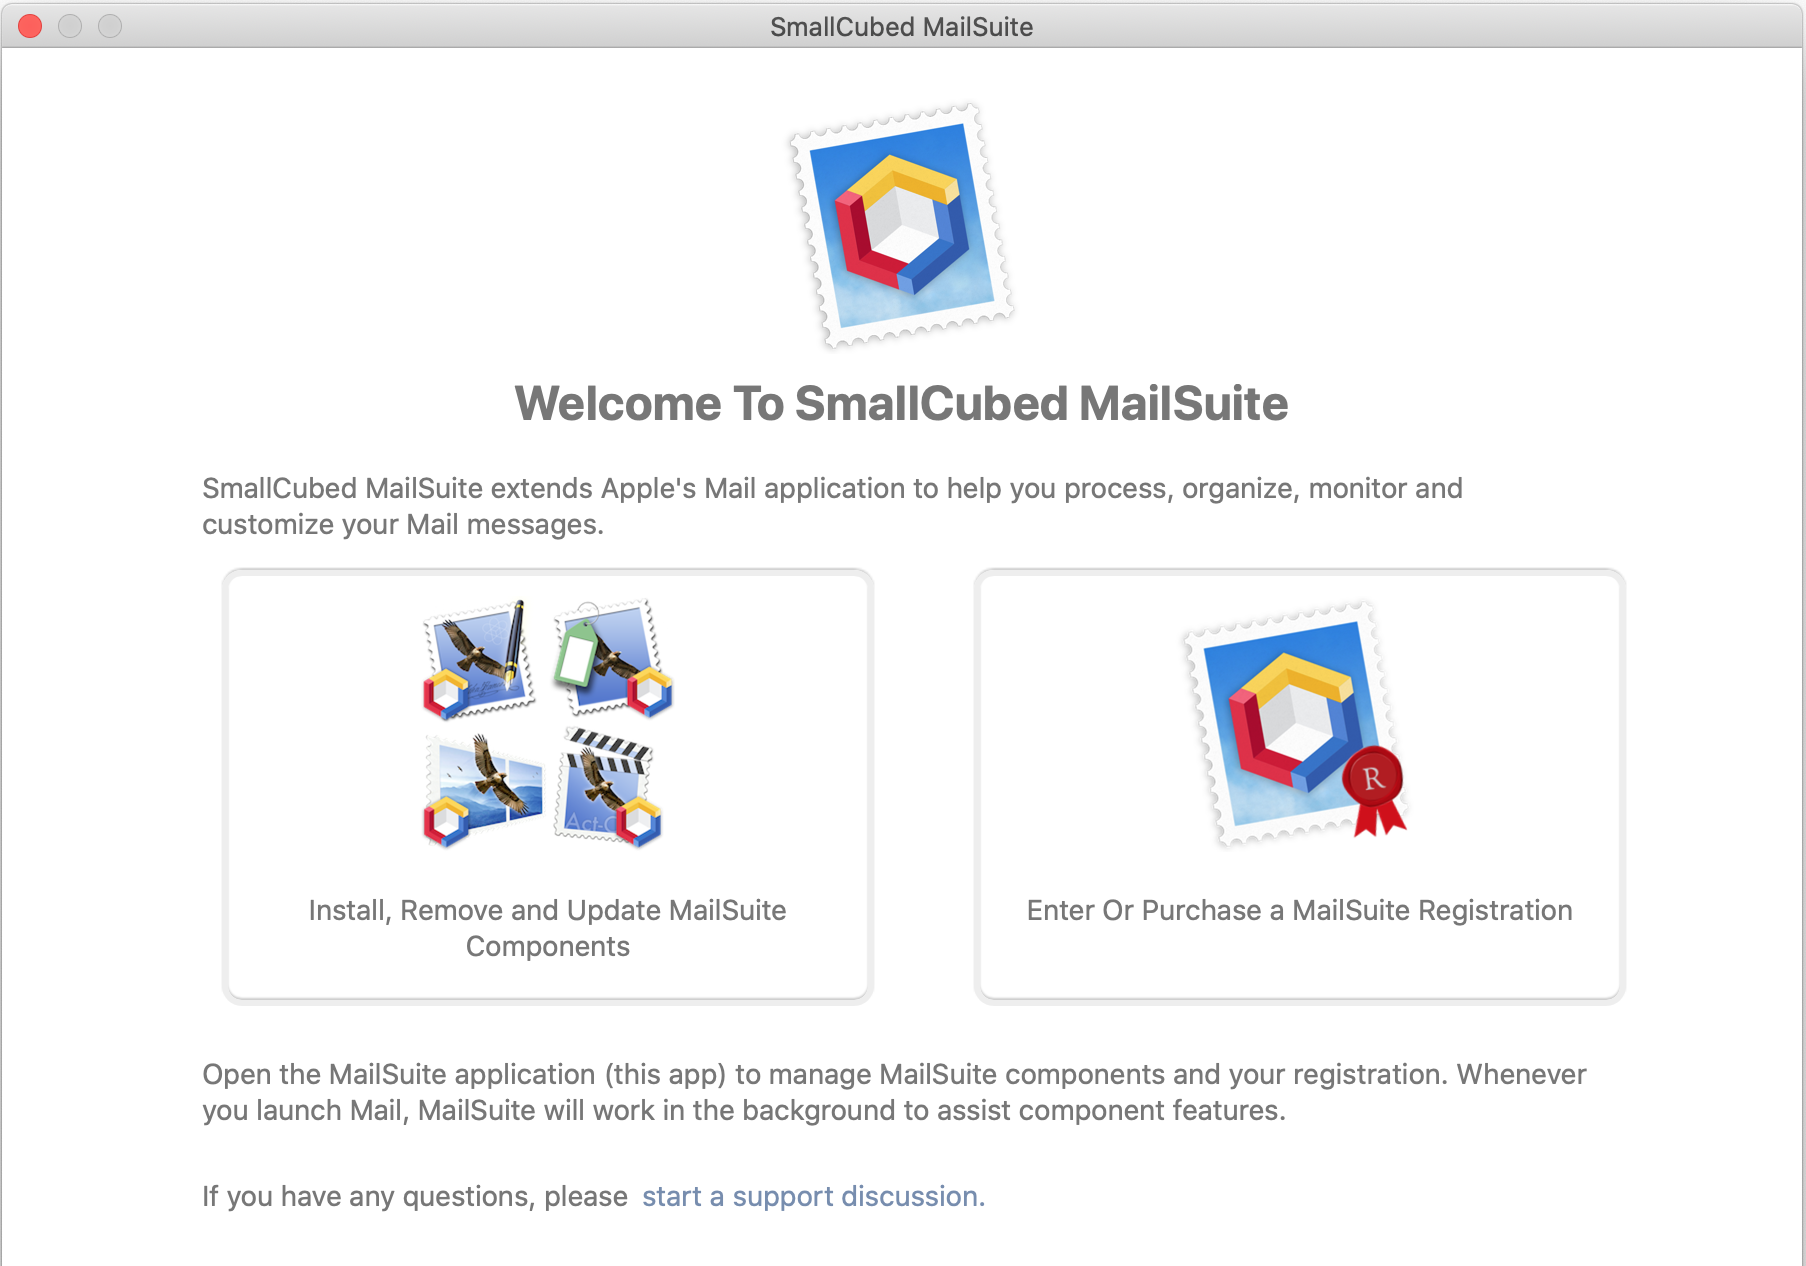 MailSuite welcome screen